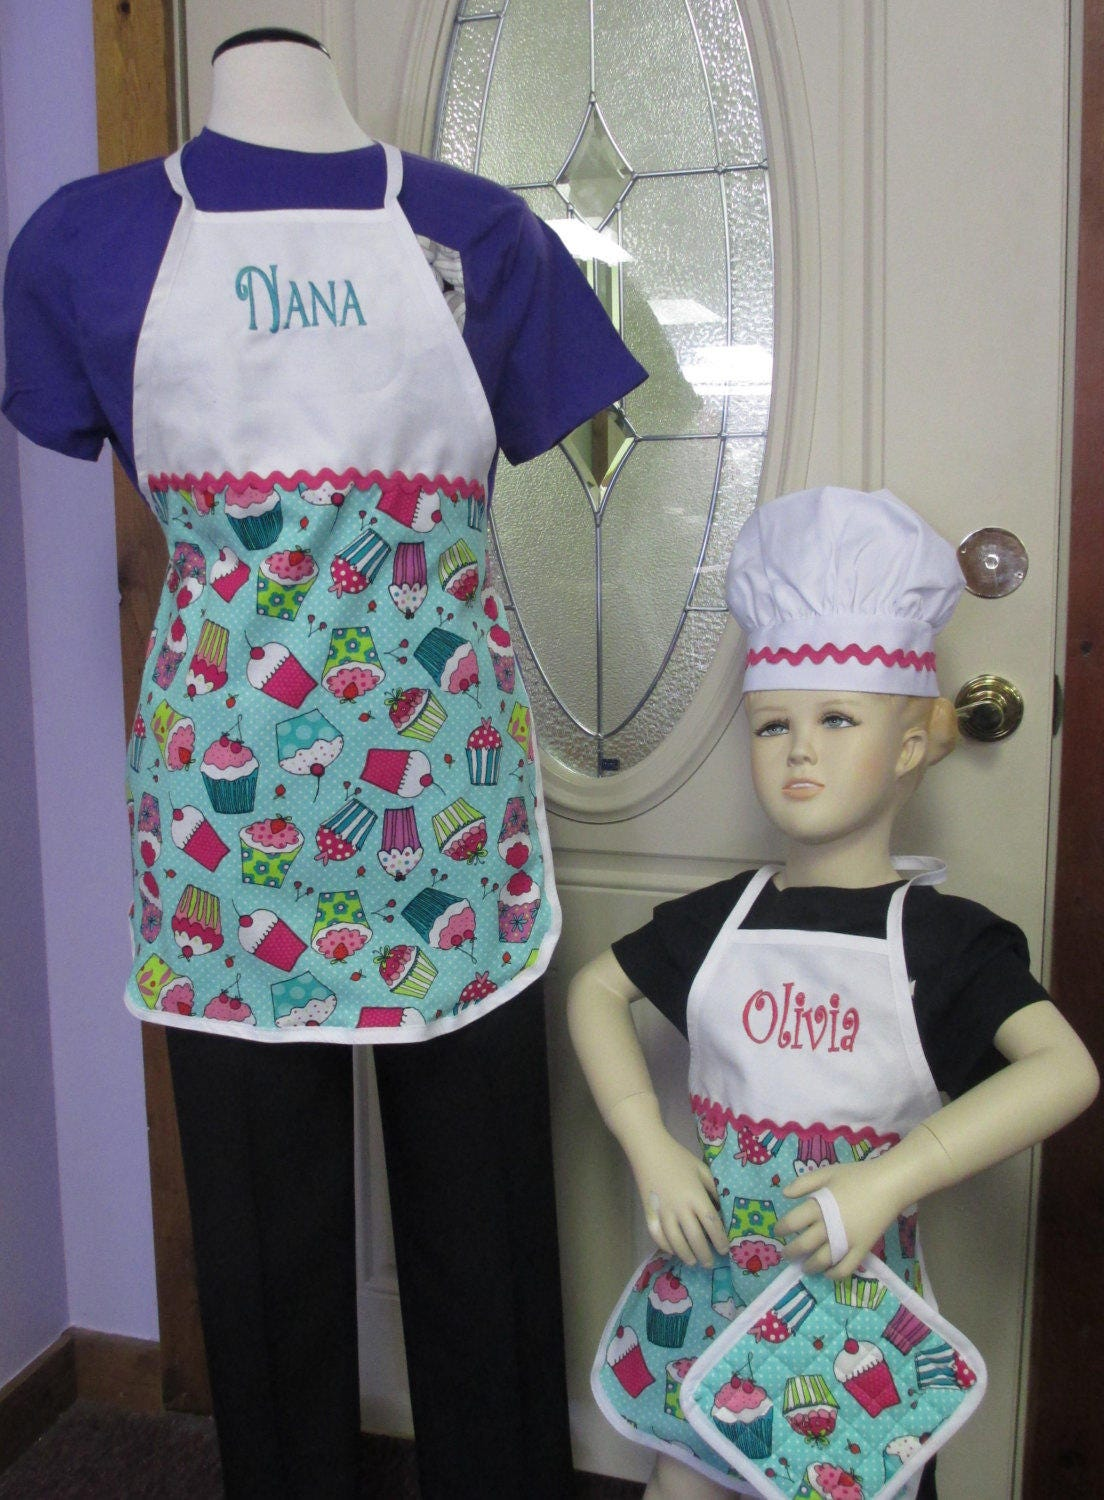 687ae4c1e01 Personalized Apron Cupcake Adult or Child Size with Chef Hat and Hot Pad- FREE SHIPPING